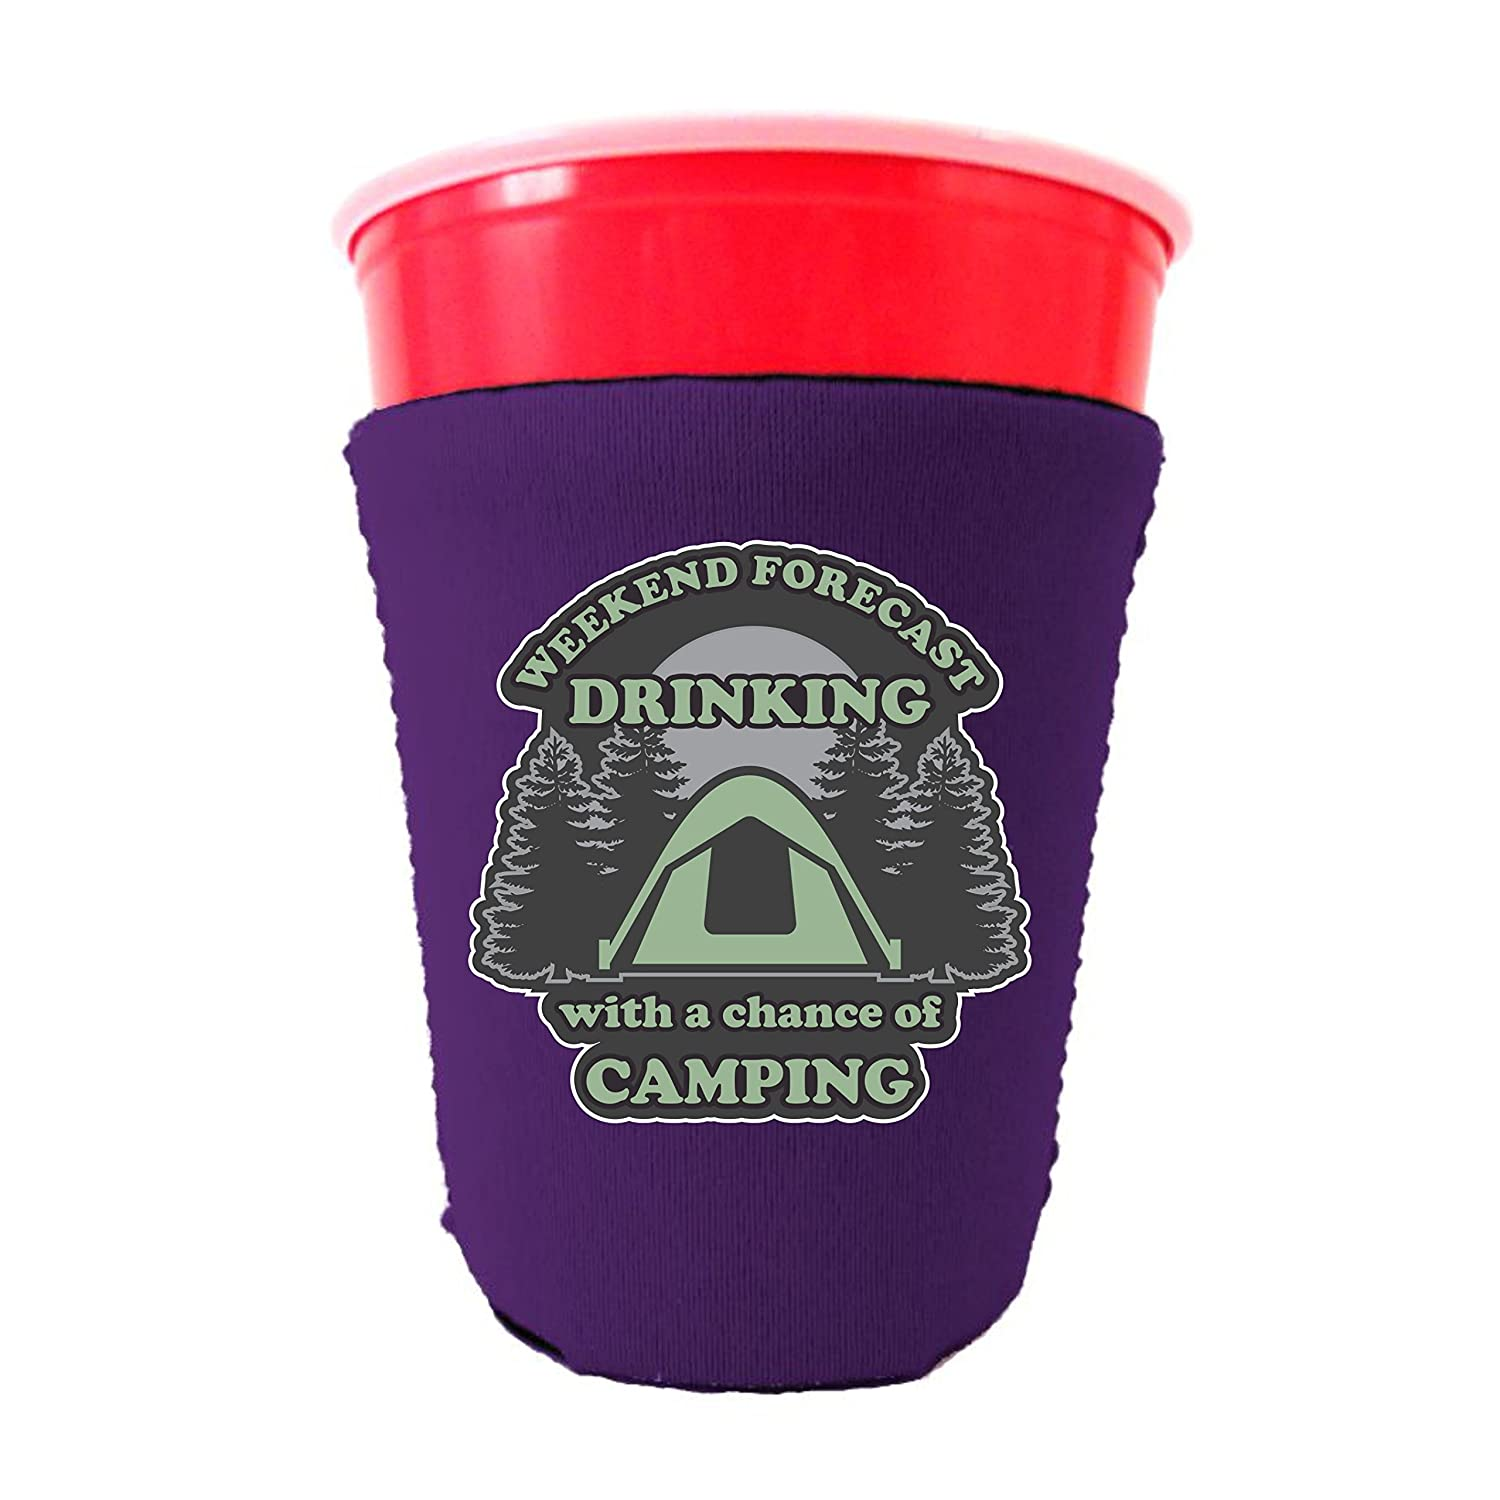 週末予測Drinking with a Chance ofキャンプネオプレンCollapsibleソロカップクーリー 16-18 oz. Party Cup パープル WeekendForecastSoloPurple B07B2B4GGT  パープル